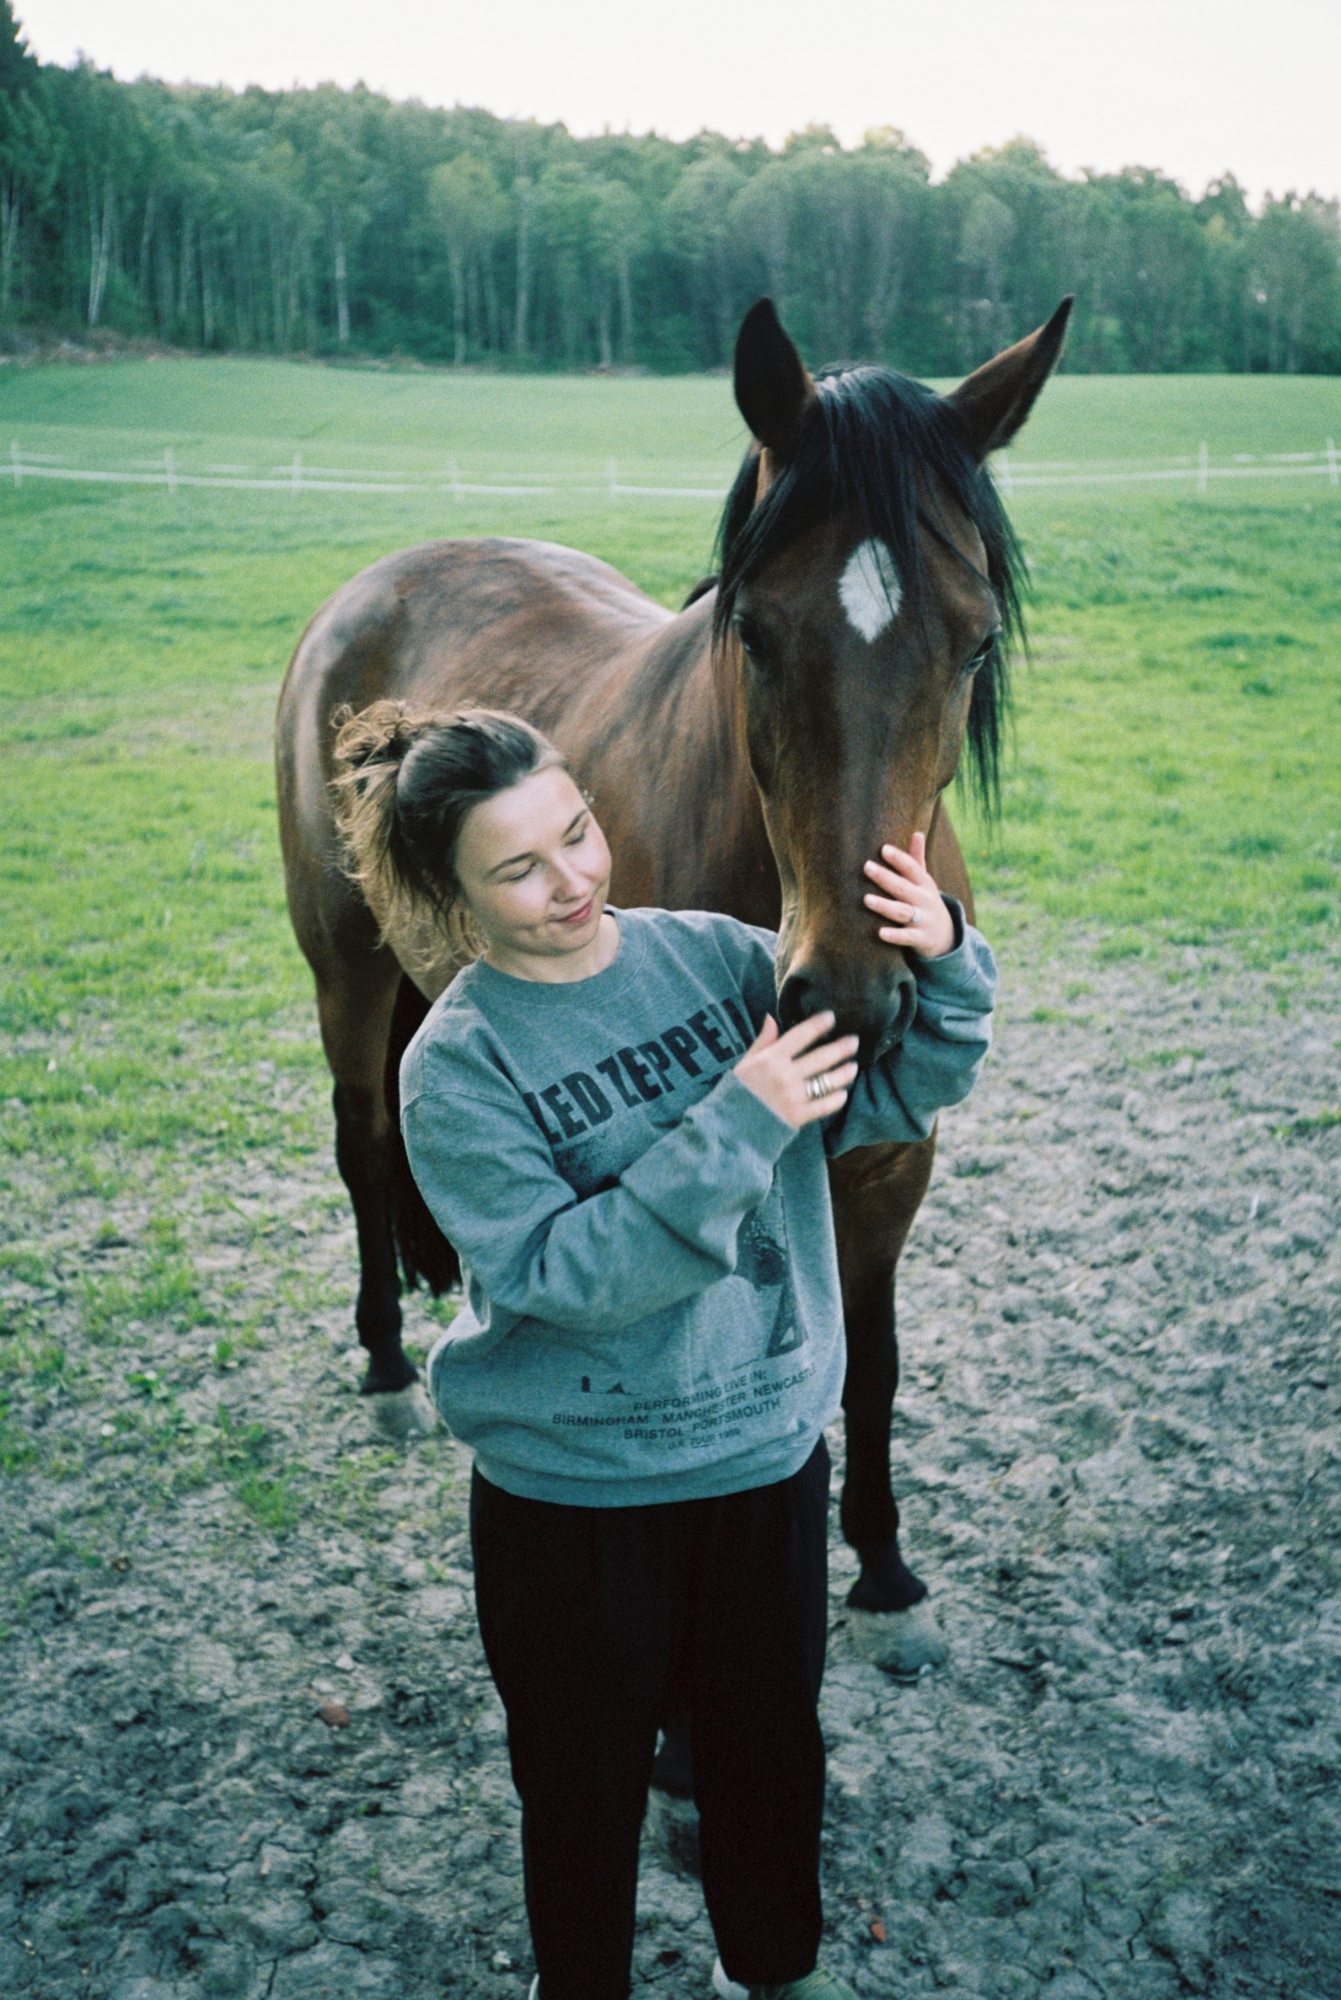 A portrait of Ine, a Norwegian girl, holding the nose of a horse. They are stood in a field together.